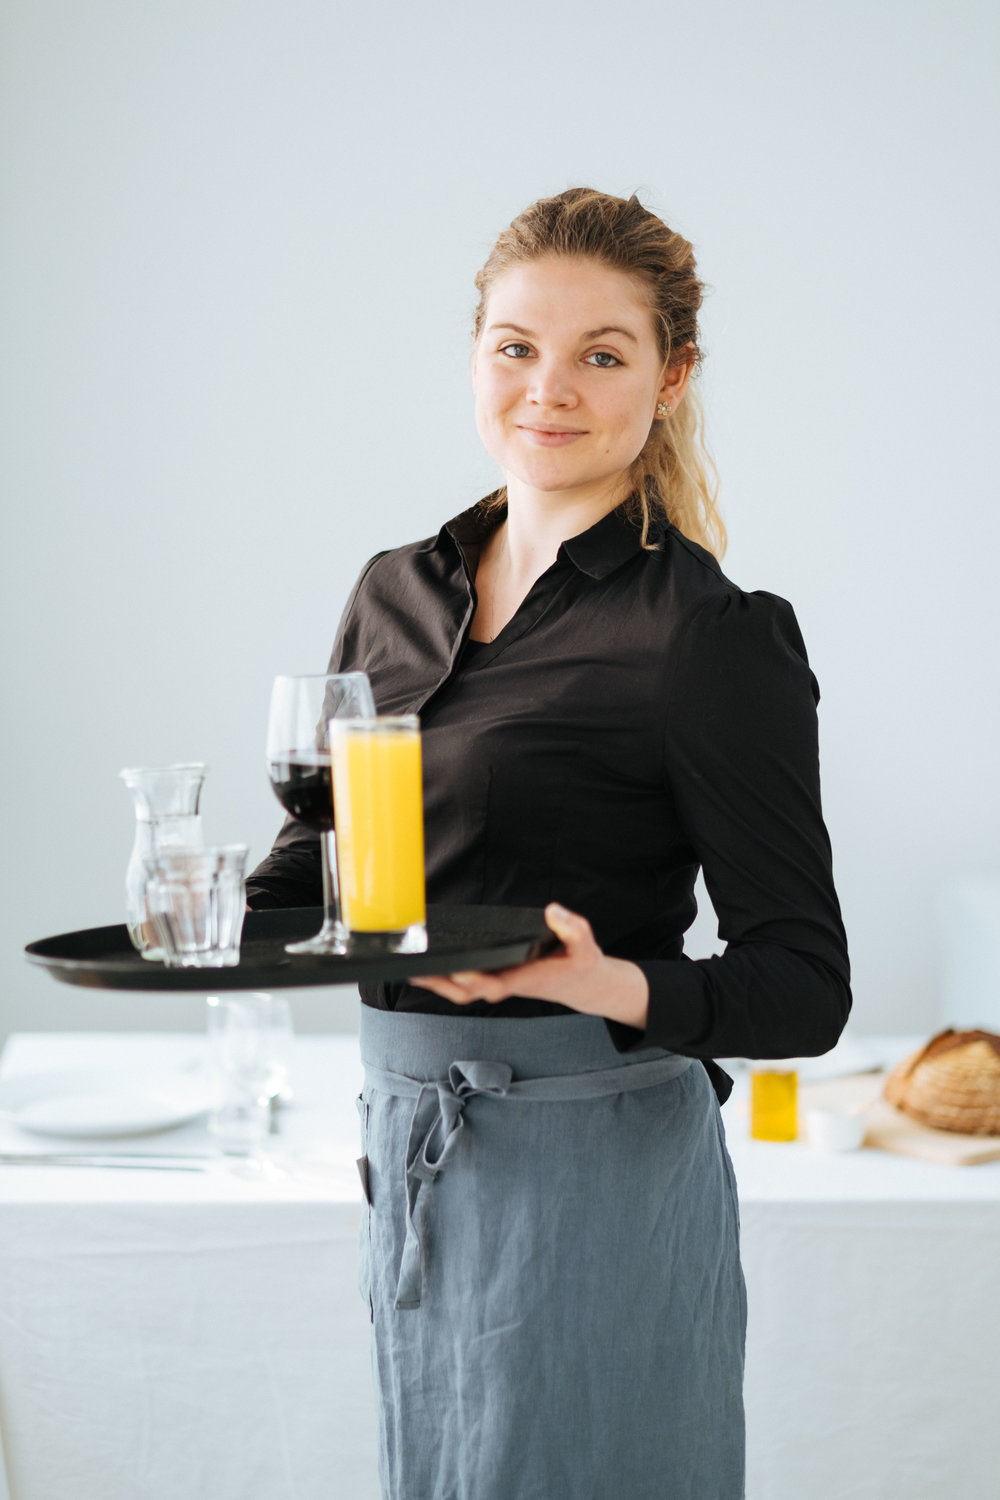 Waitress Commercial Photography